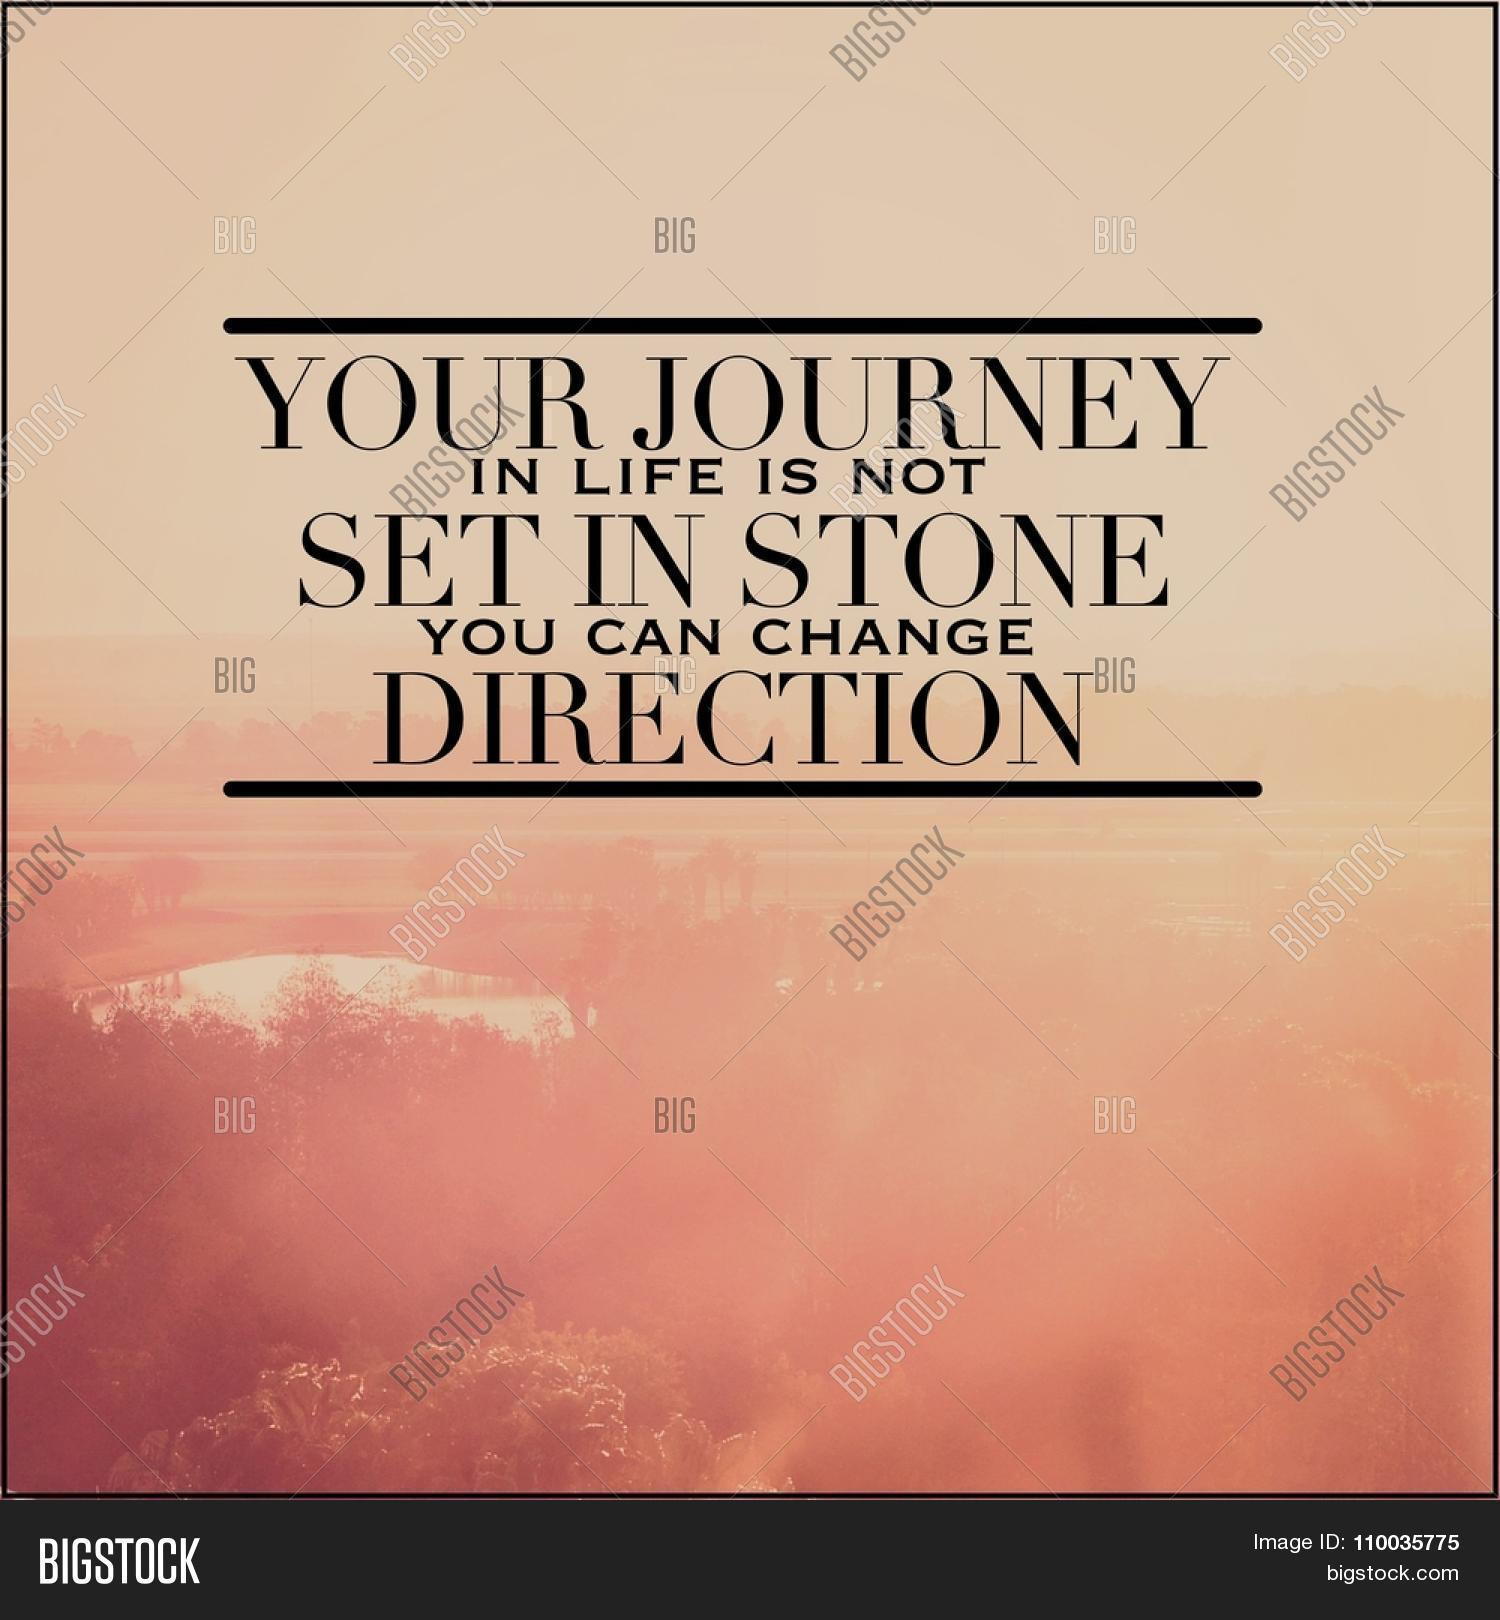 Inspirational Quotes About Lifes Journey Inspirational Typographic Quote  Image & Photo  Bigstock